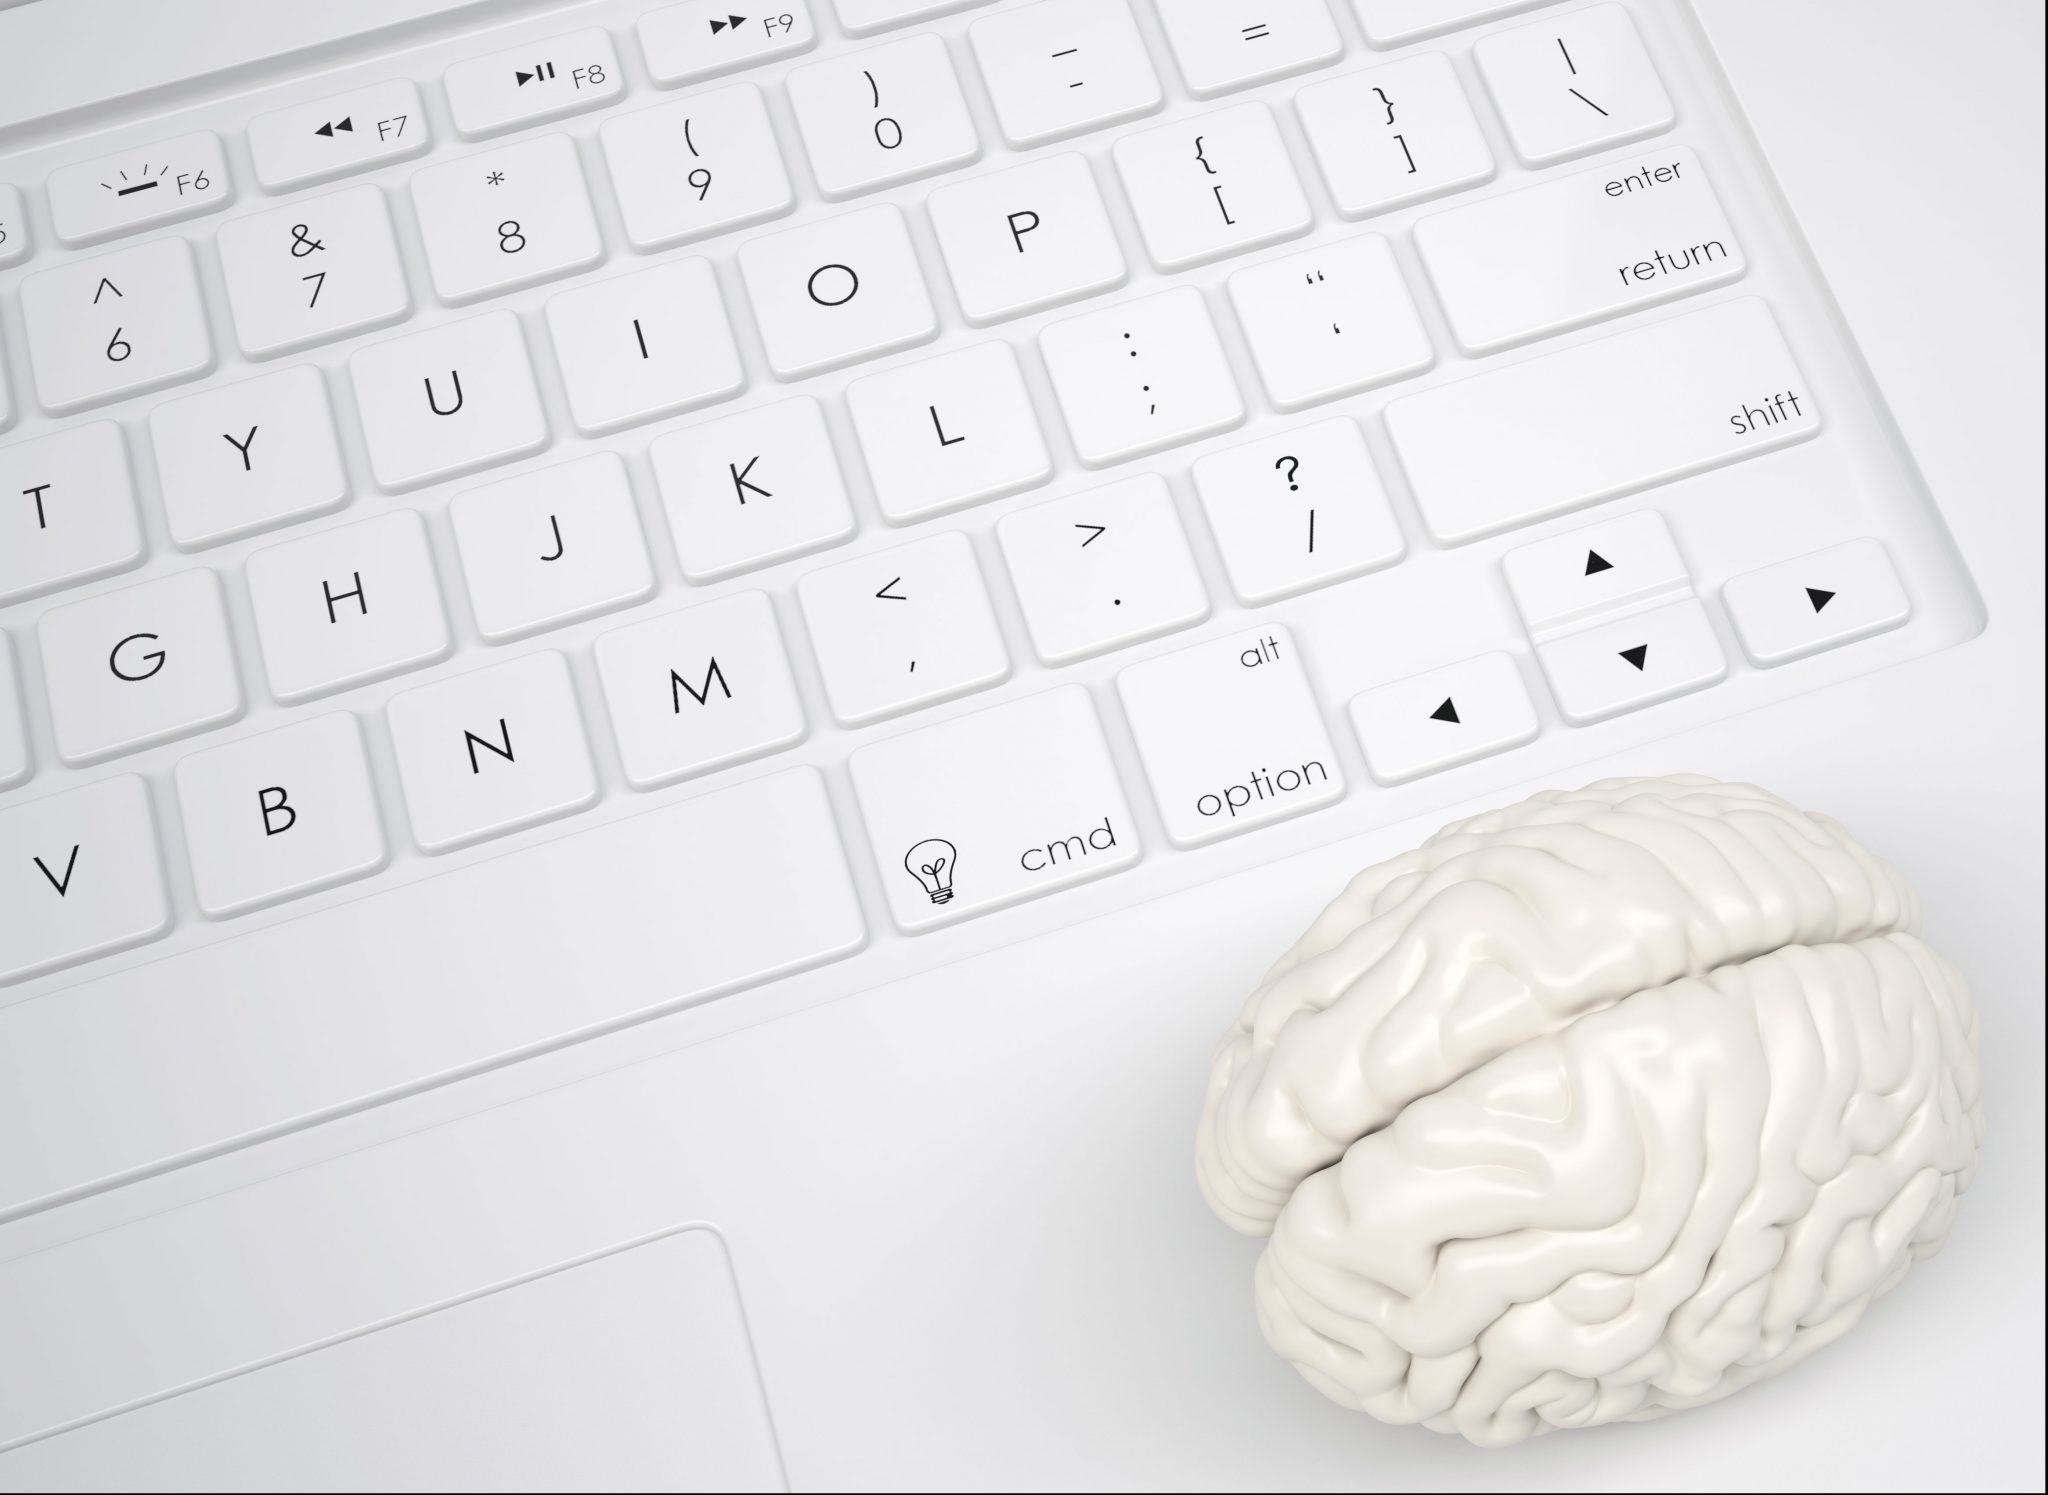 artificial intelligence soon to be introduced to Wordapp